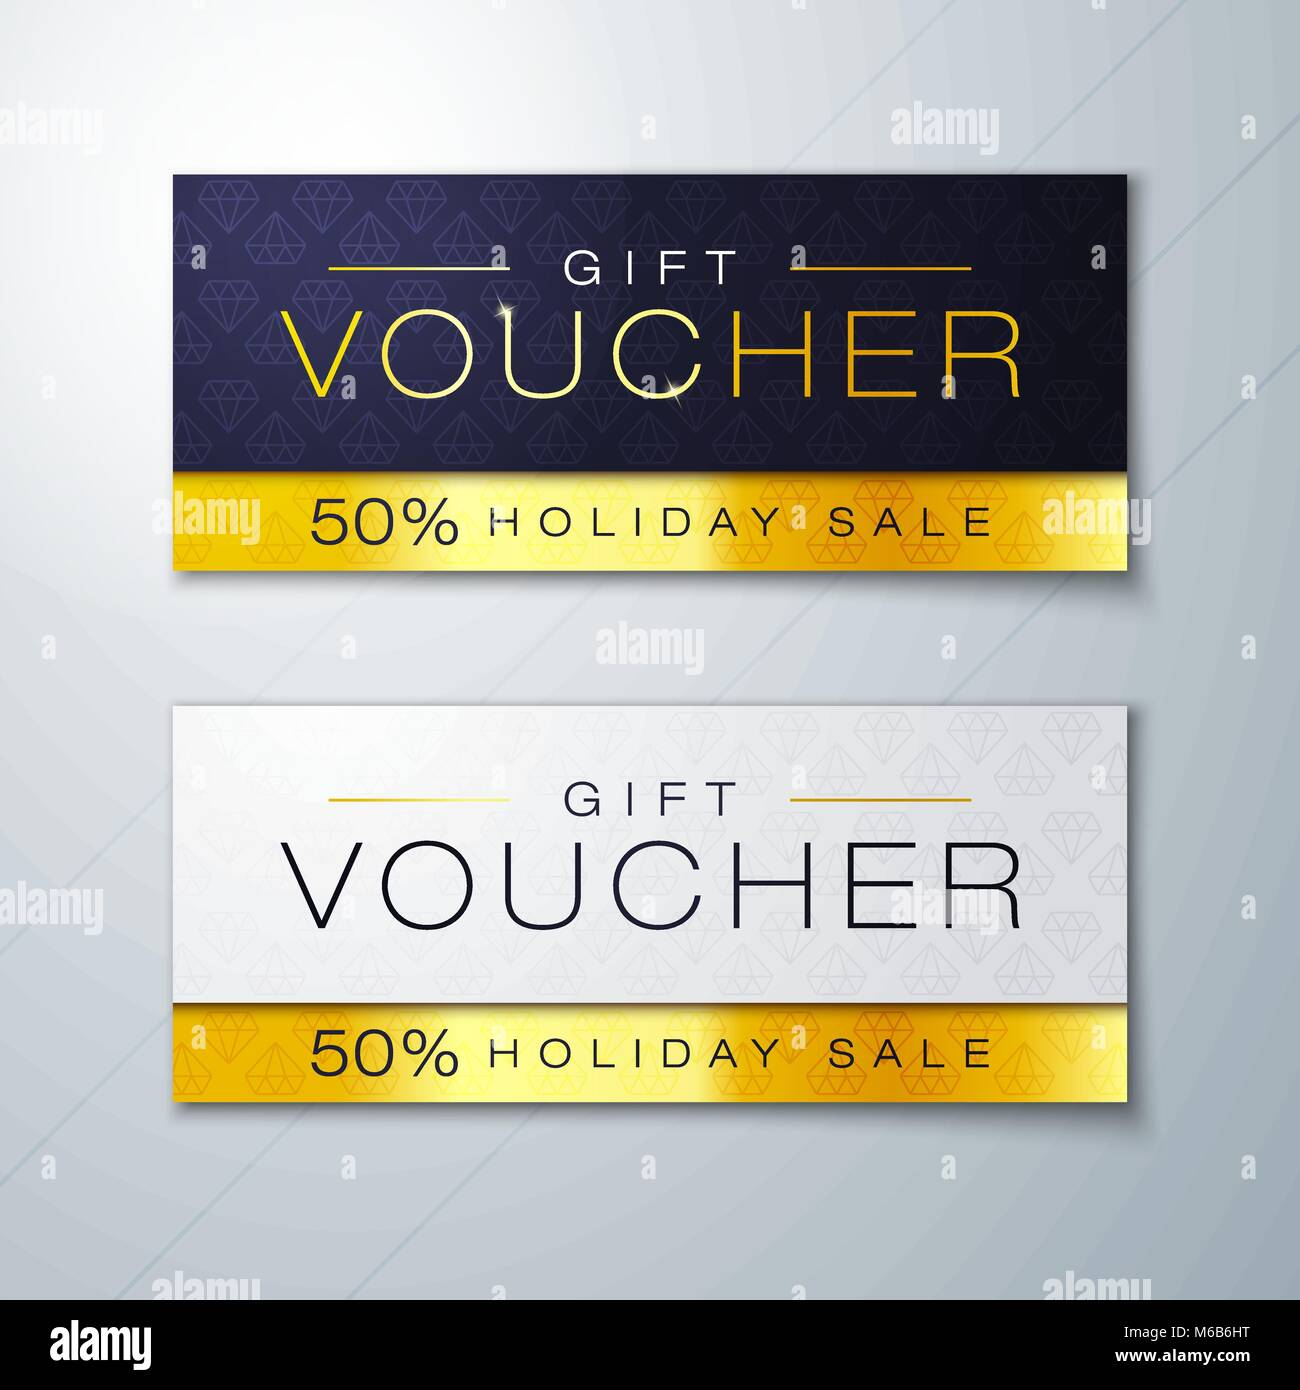 vector illustration gift voucher template with clean and modern